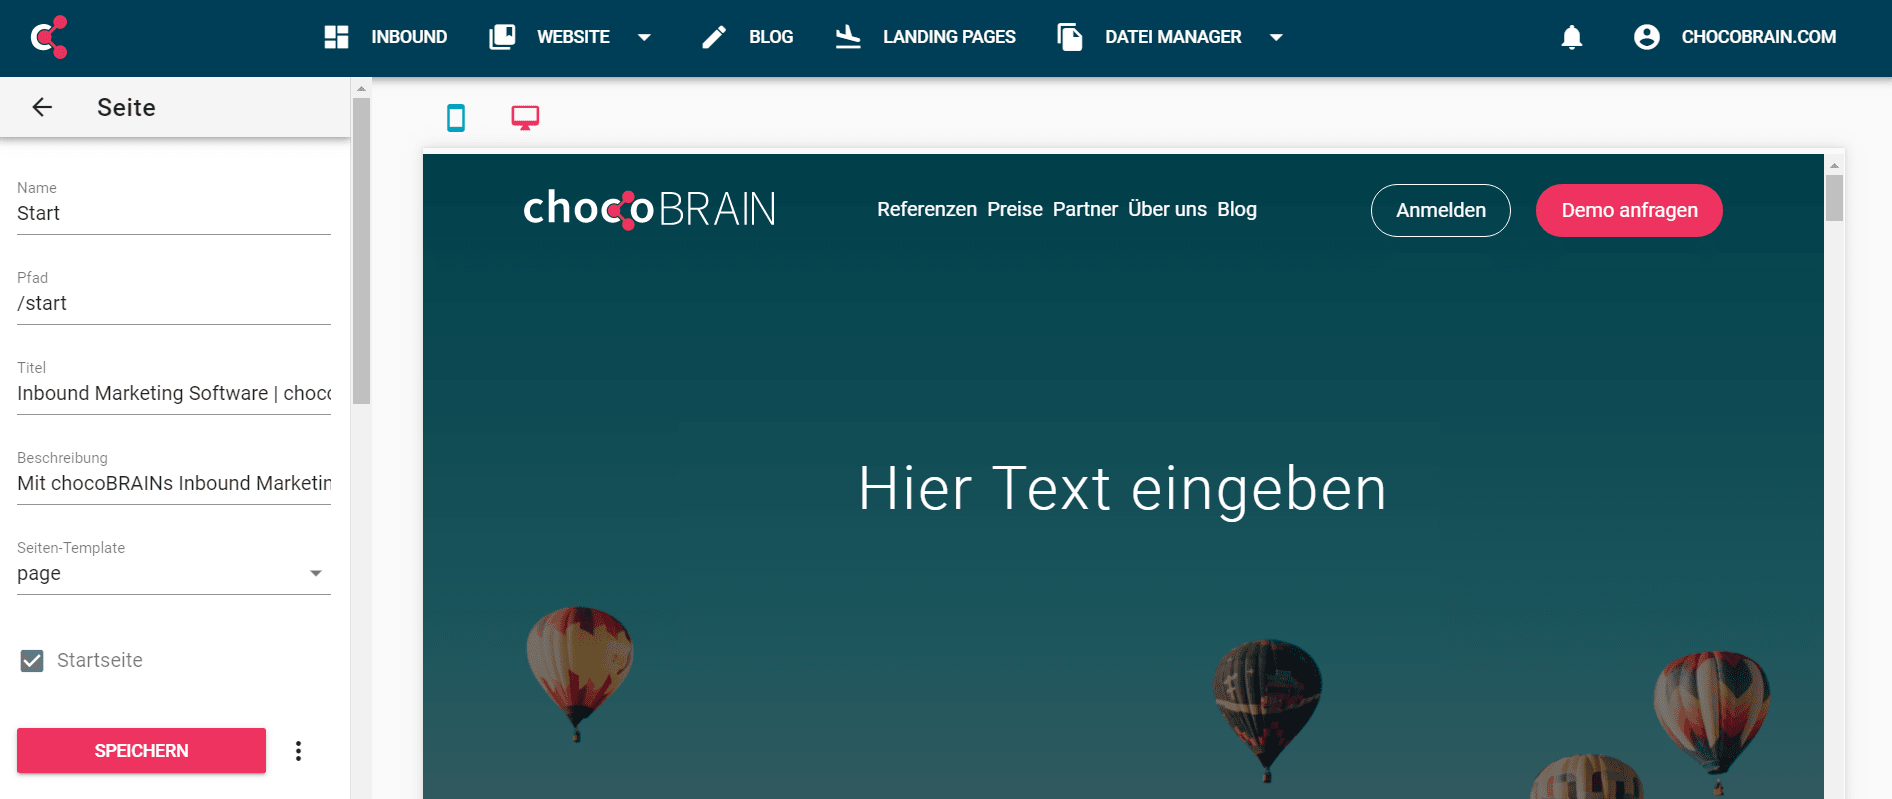 chocoBRAIN CMS Screenshot